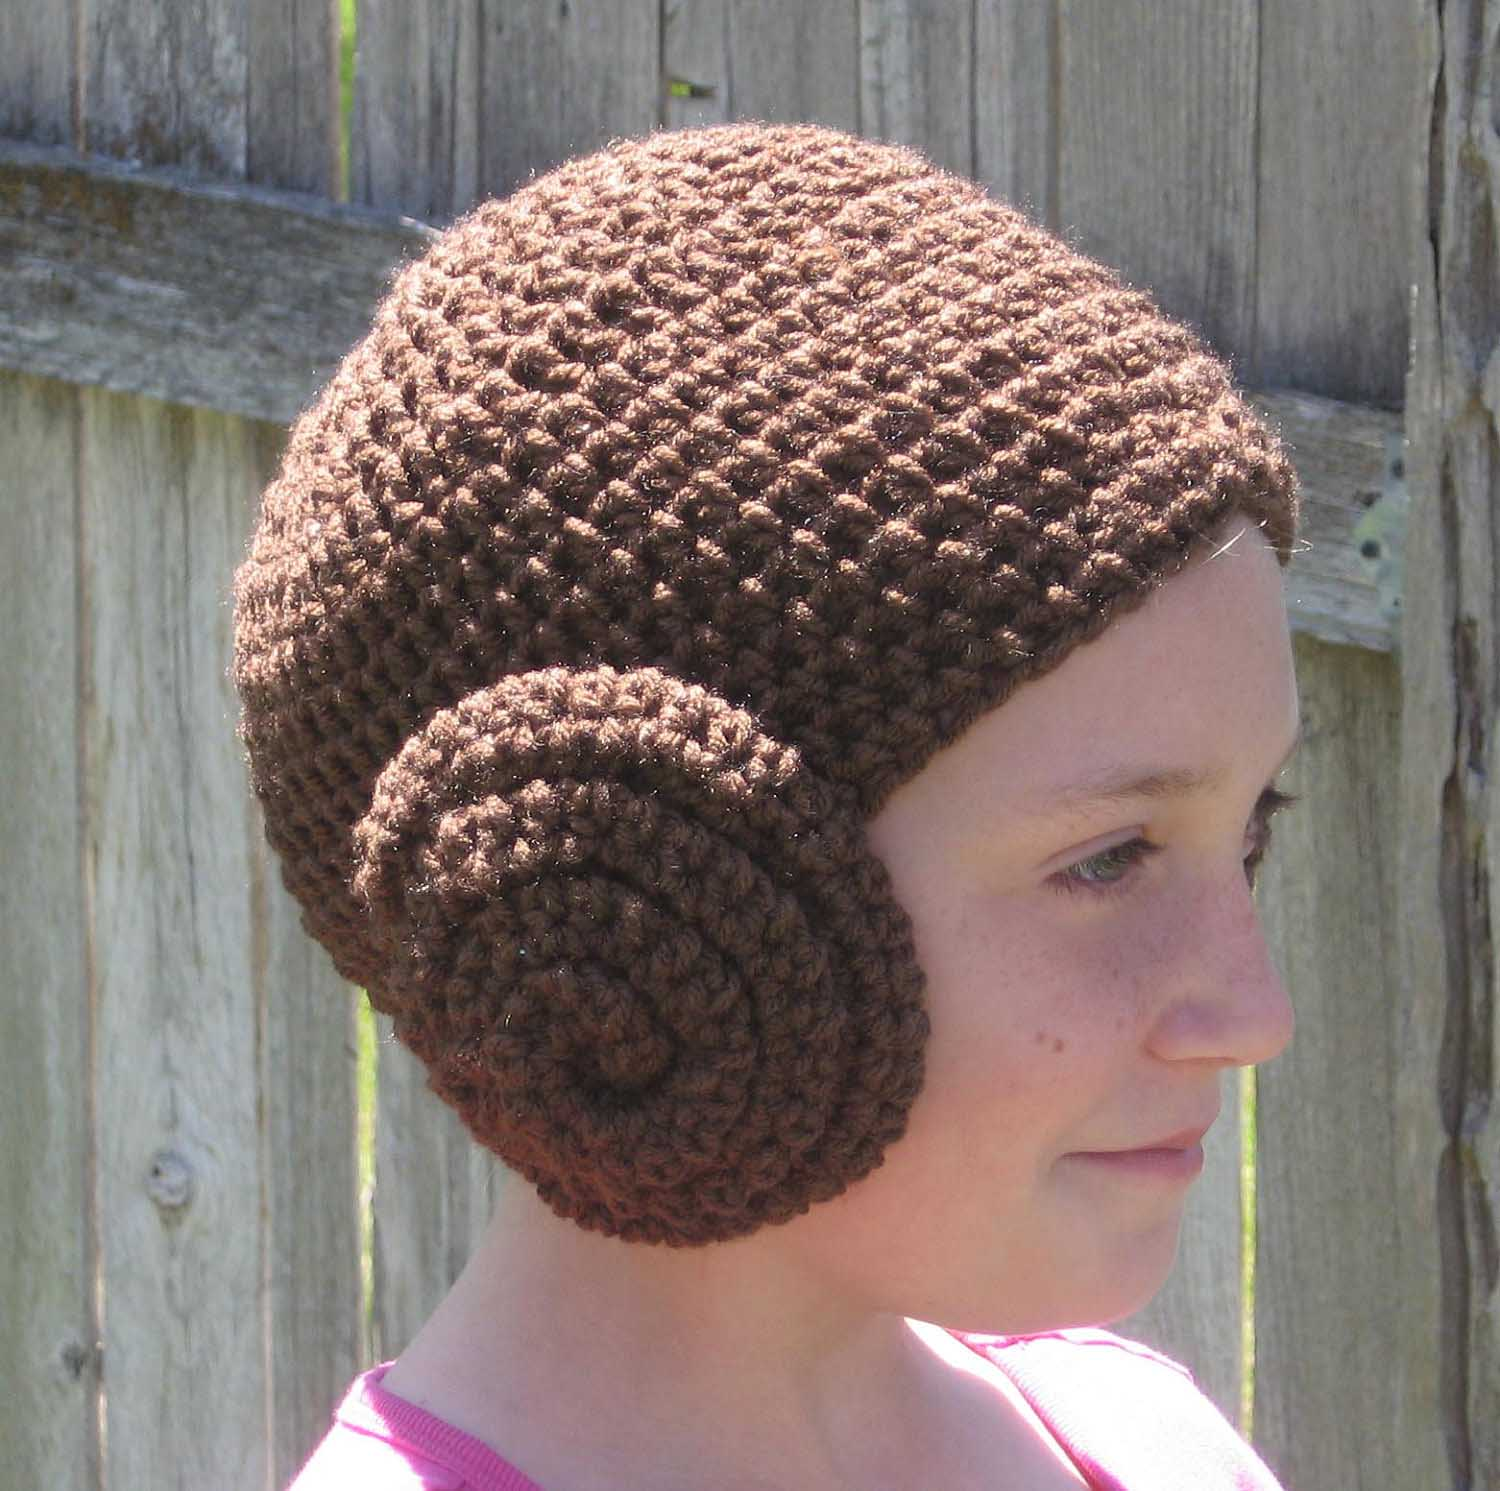 Princess Leia Hair Headphone Covers 1121f245892